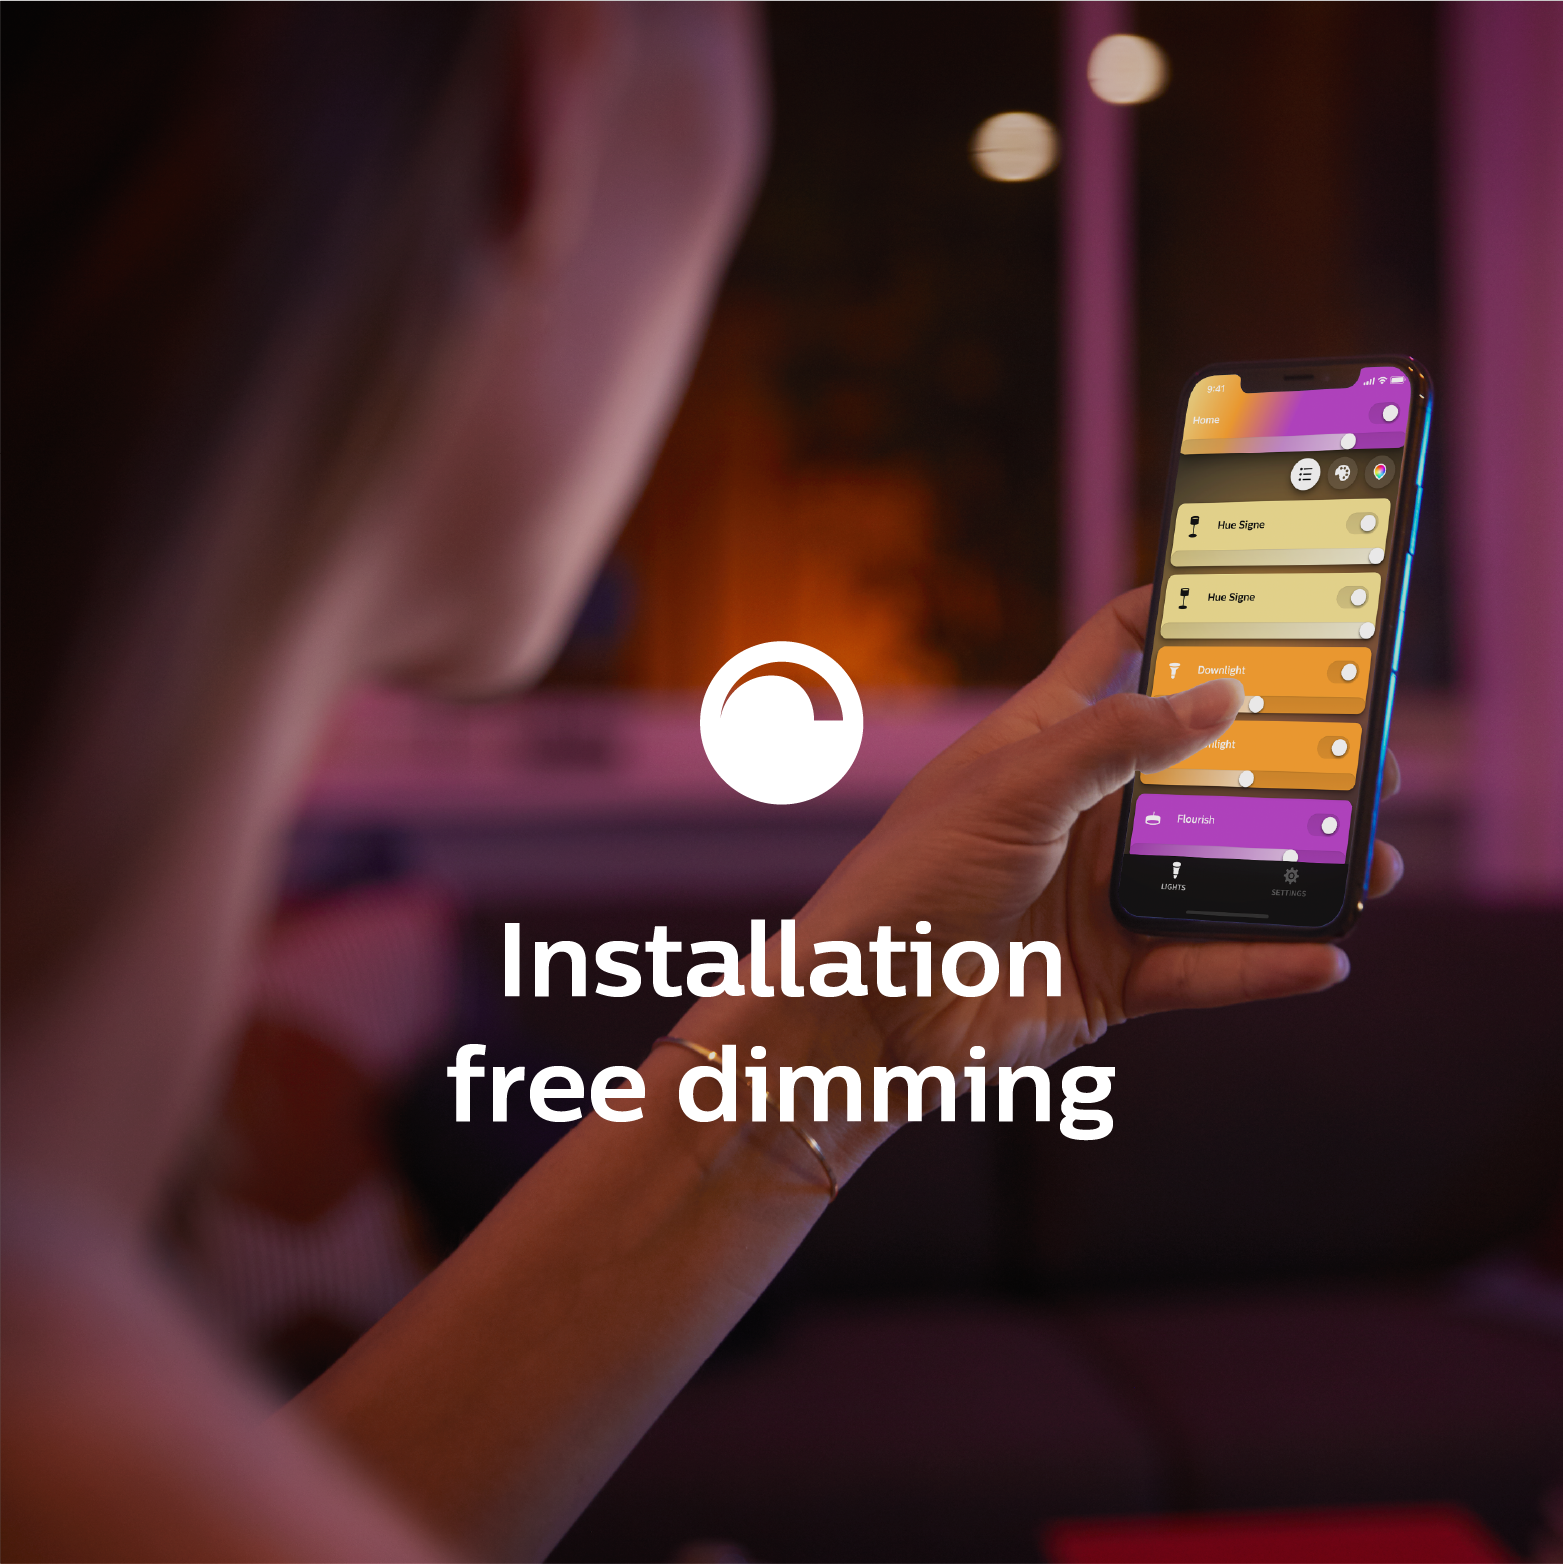 Installation free dimming